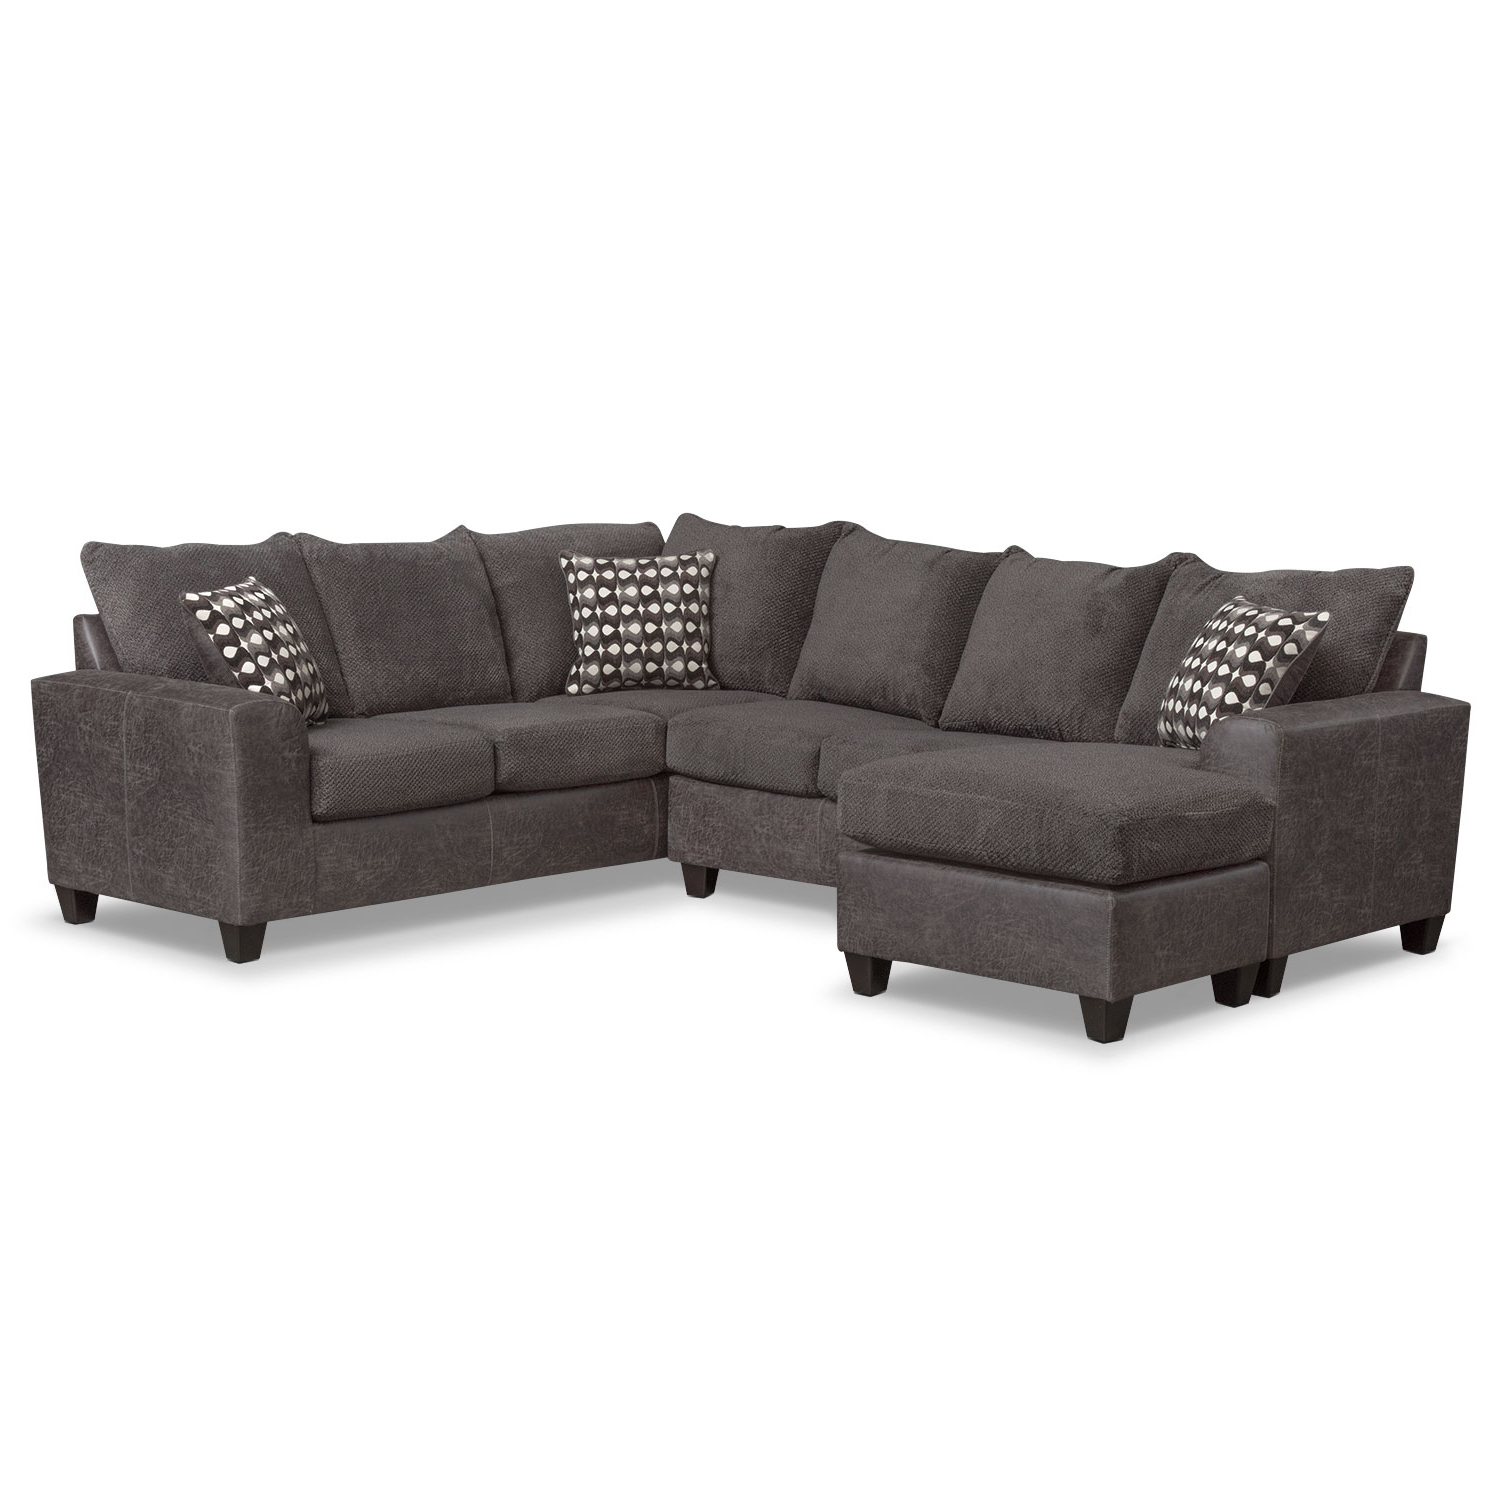 2018 Lucy Grey 2 Piece Sectionals With Laf Chaise In Sleeper Sectional With Chaise – Tidex (View 2 of 20)